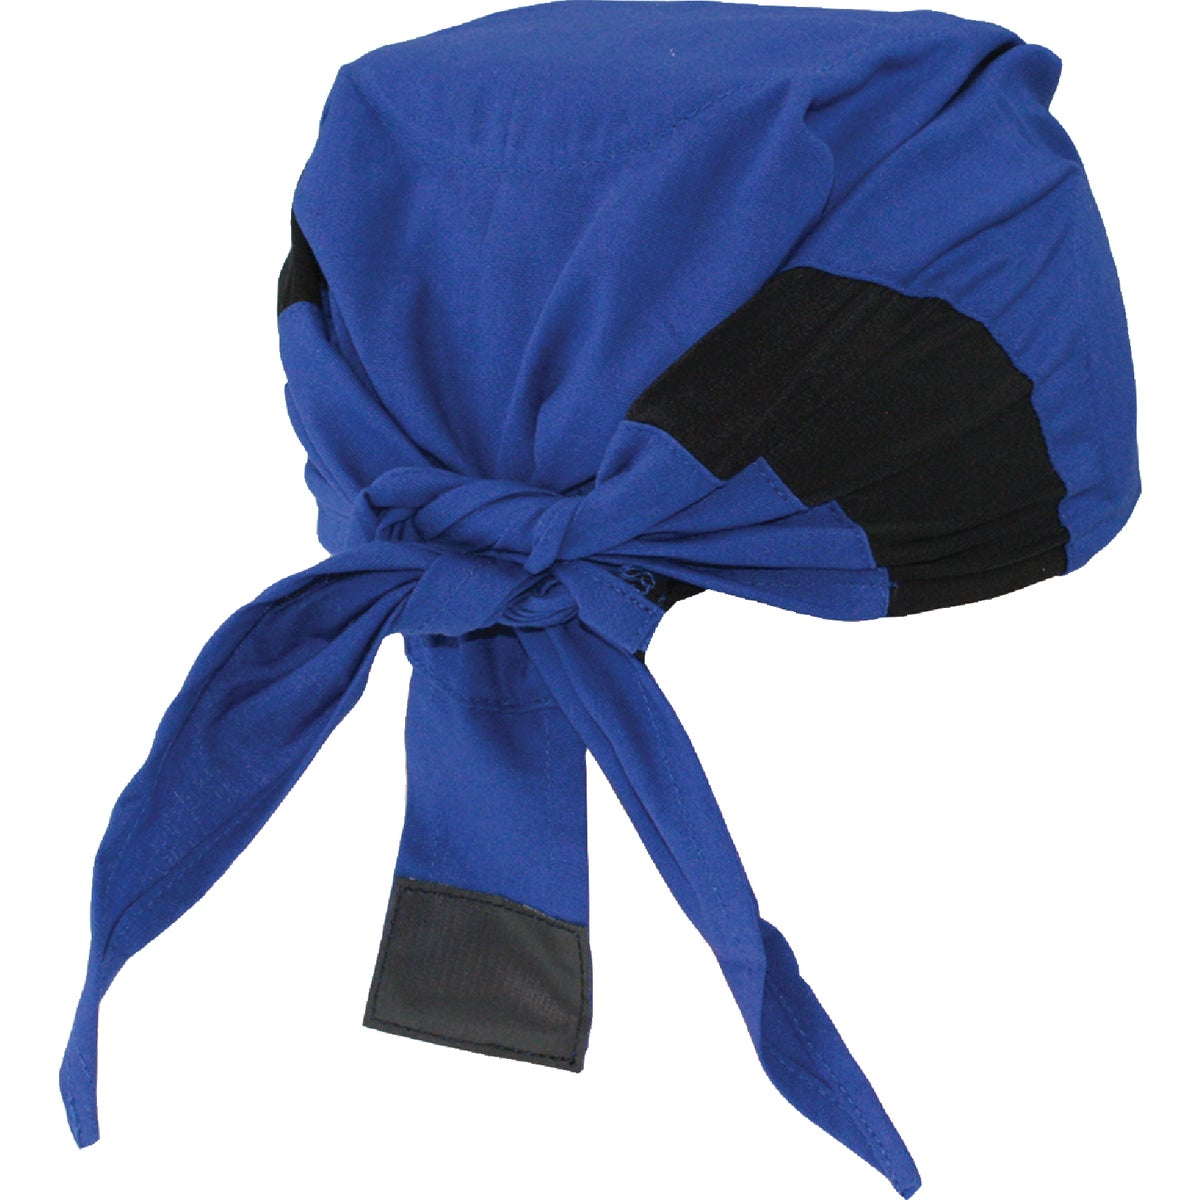 BLUE COOL TRIANGLE HAT